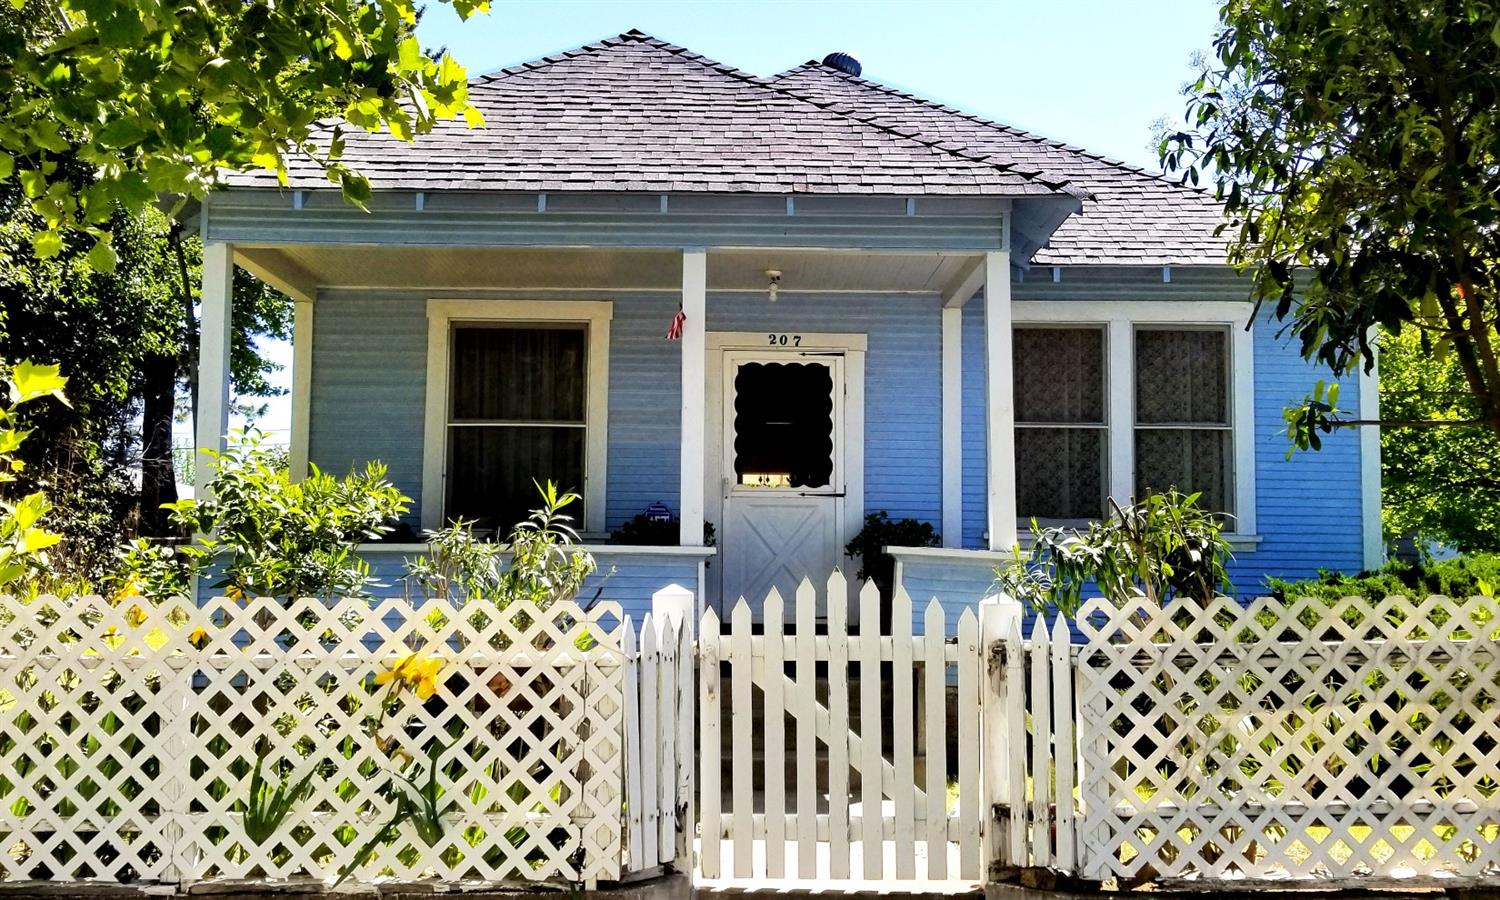 Excellent values in heart of Old Roseville!!!    This two bedroom one bathroom bungalow sits on  0.1944* lot in the neighborhood, fruit trees, making this a one of kind home. The home offers ample living space to its new owner and is ready for their interior touch. The large lot  plenty of space to entertain and spend summer evenings with the family. The home is located just minutes from the I-80, new Kaiser medical center, shopping, grocery, entertainment and much more. Schedule your showing today!!!